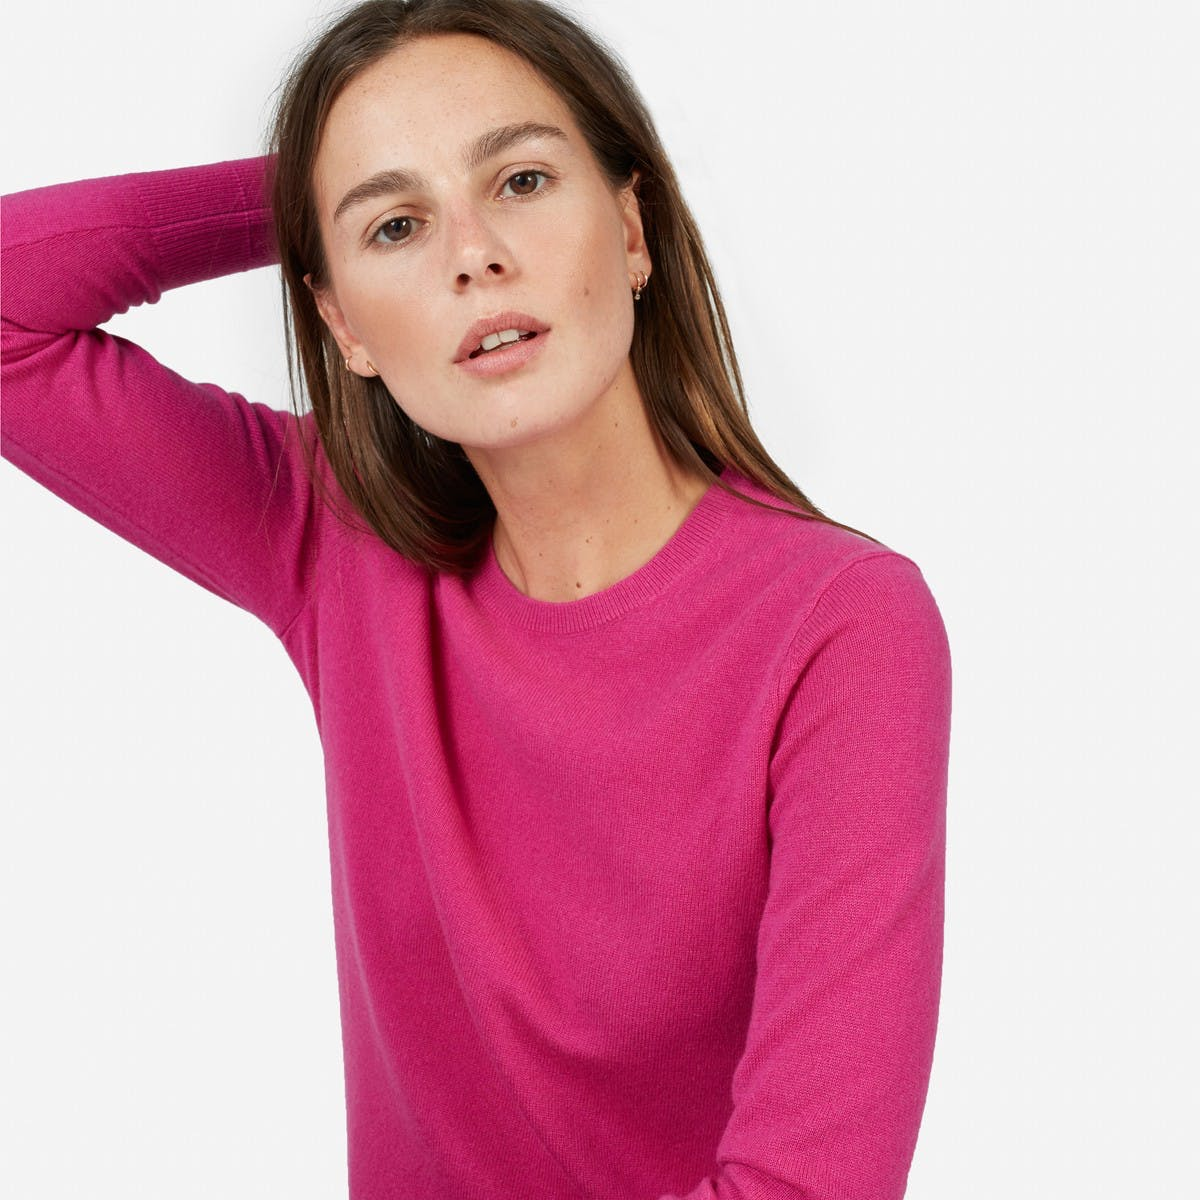 everlane cashemere sweater under  100 chicago